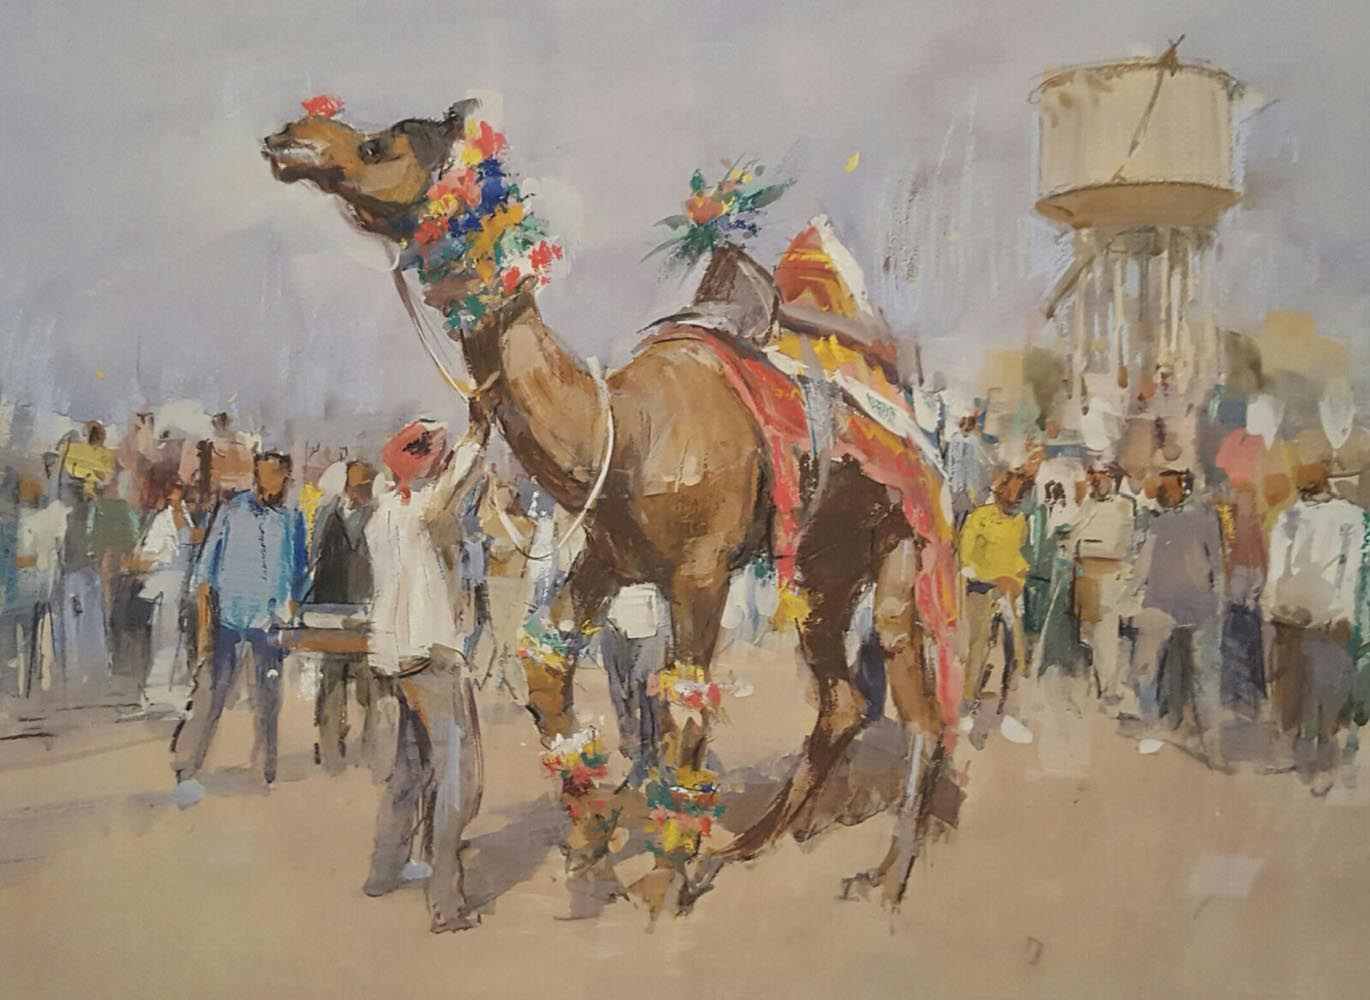 The Camel Dance